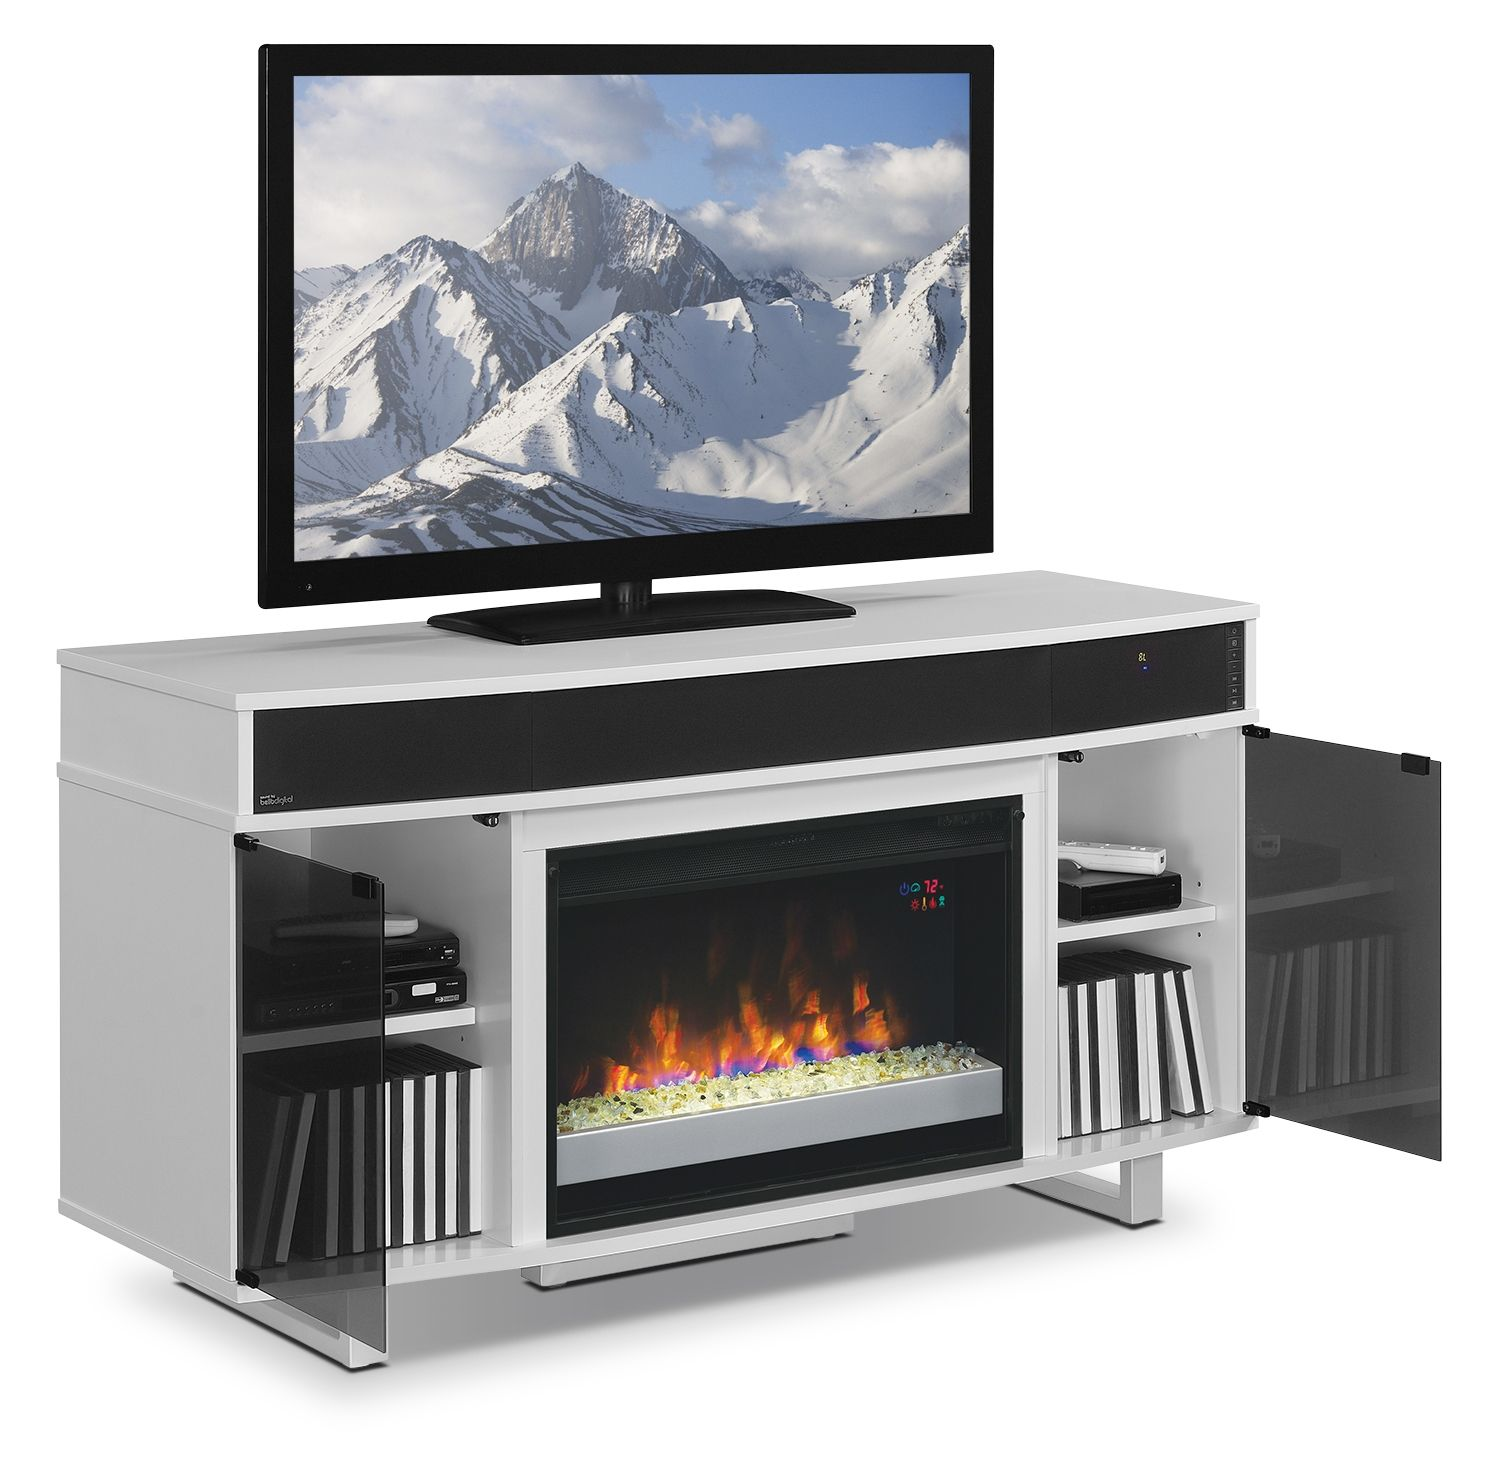 Odesos 72 Tv Stand With Glass Ember Firebox And Soundbar White Tempered Glass Door Tv Stand Fireplace Glass Doors Tv stand with fireplace and soundbar